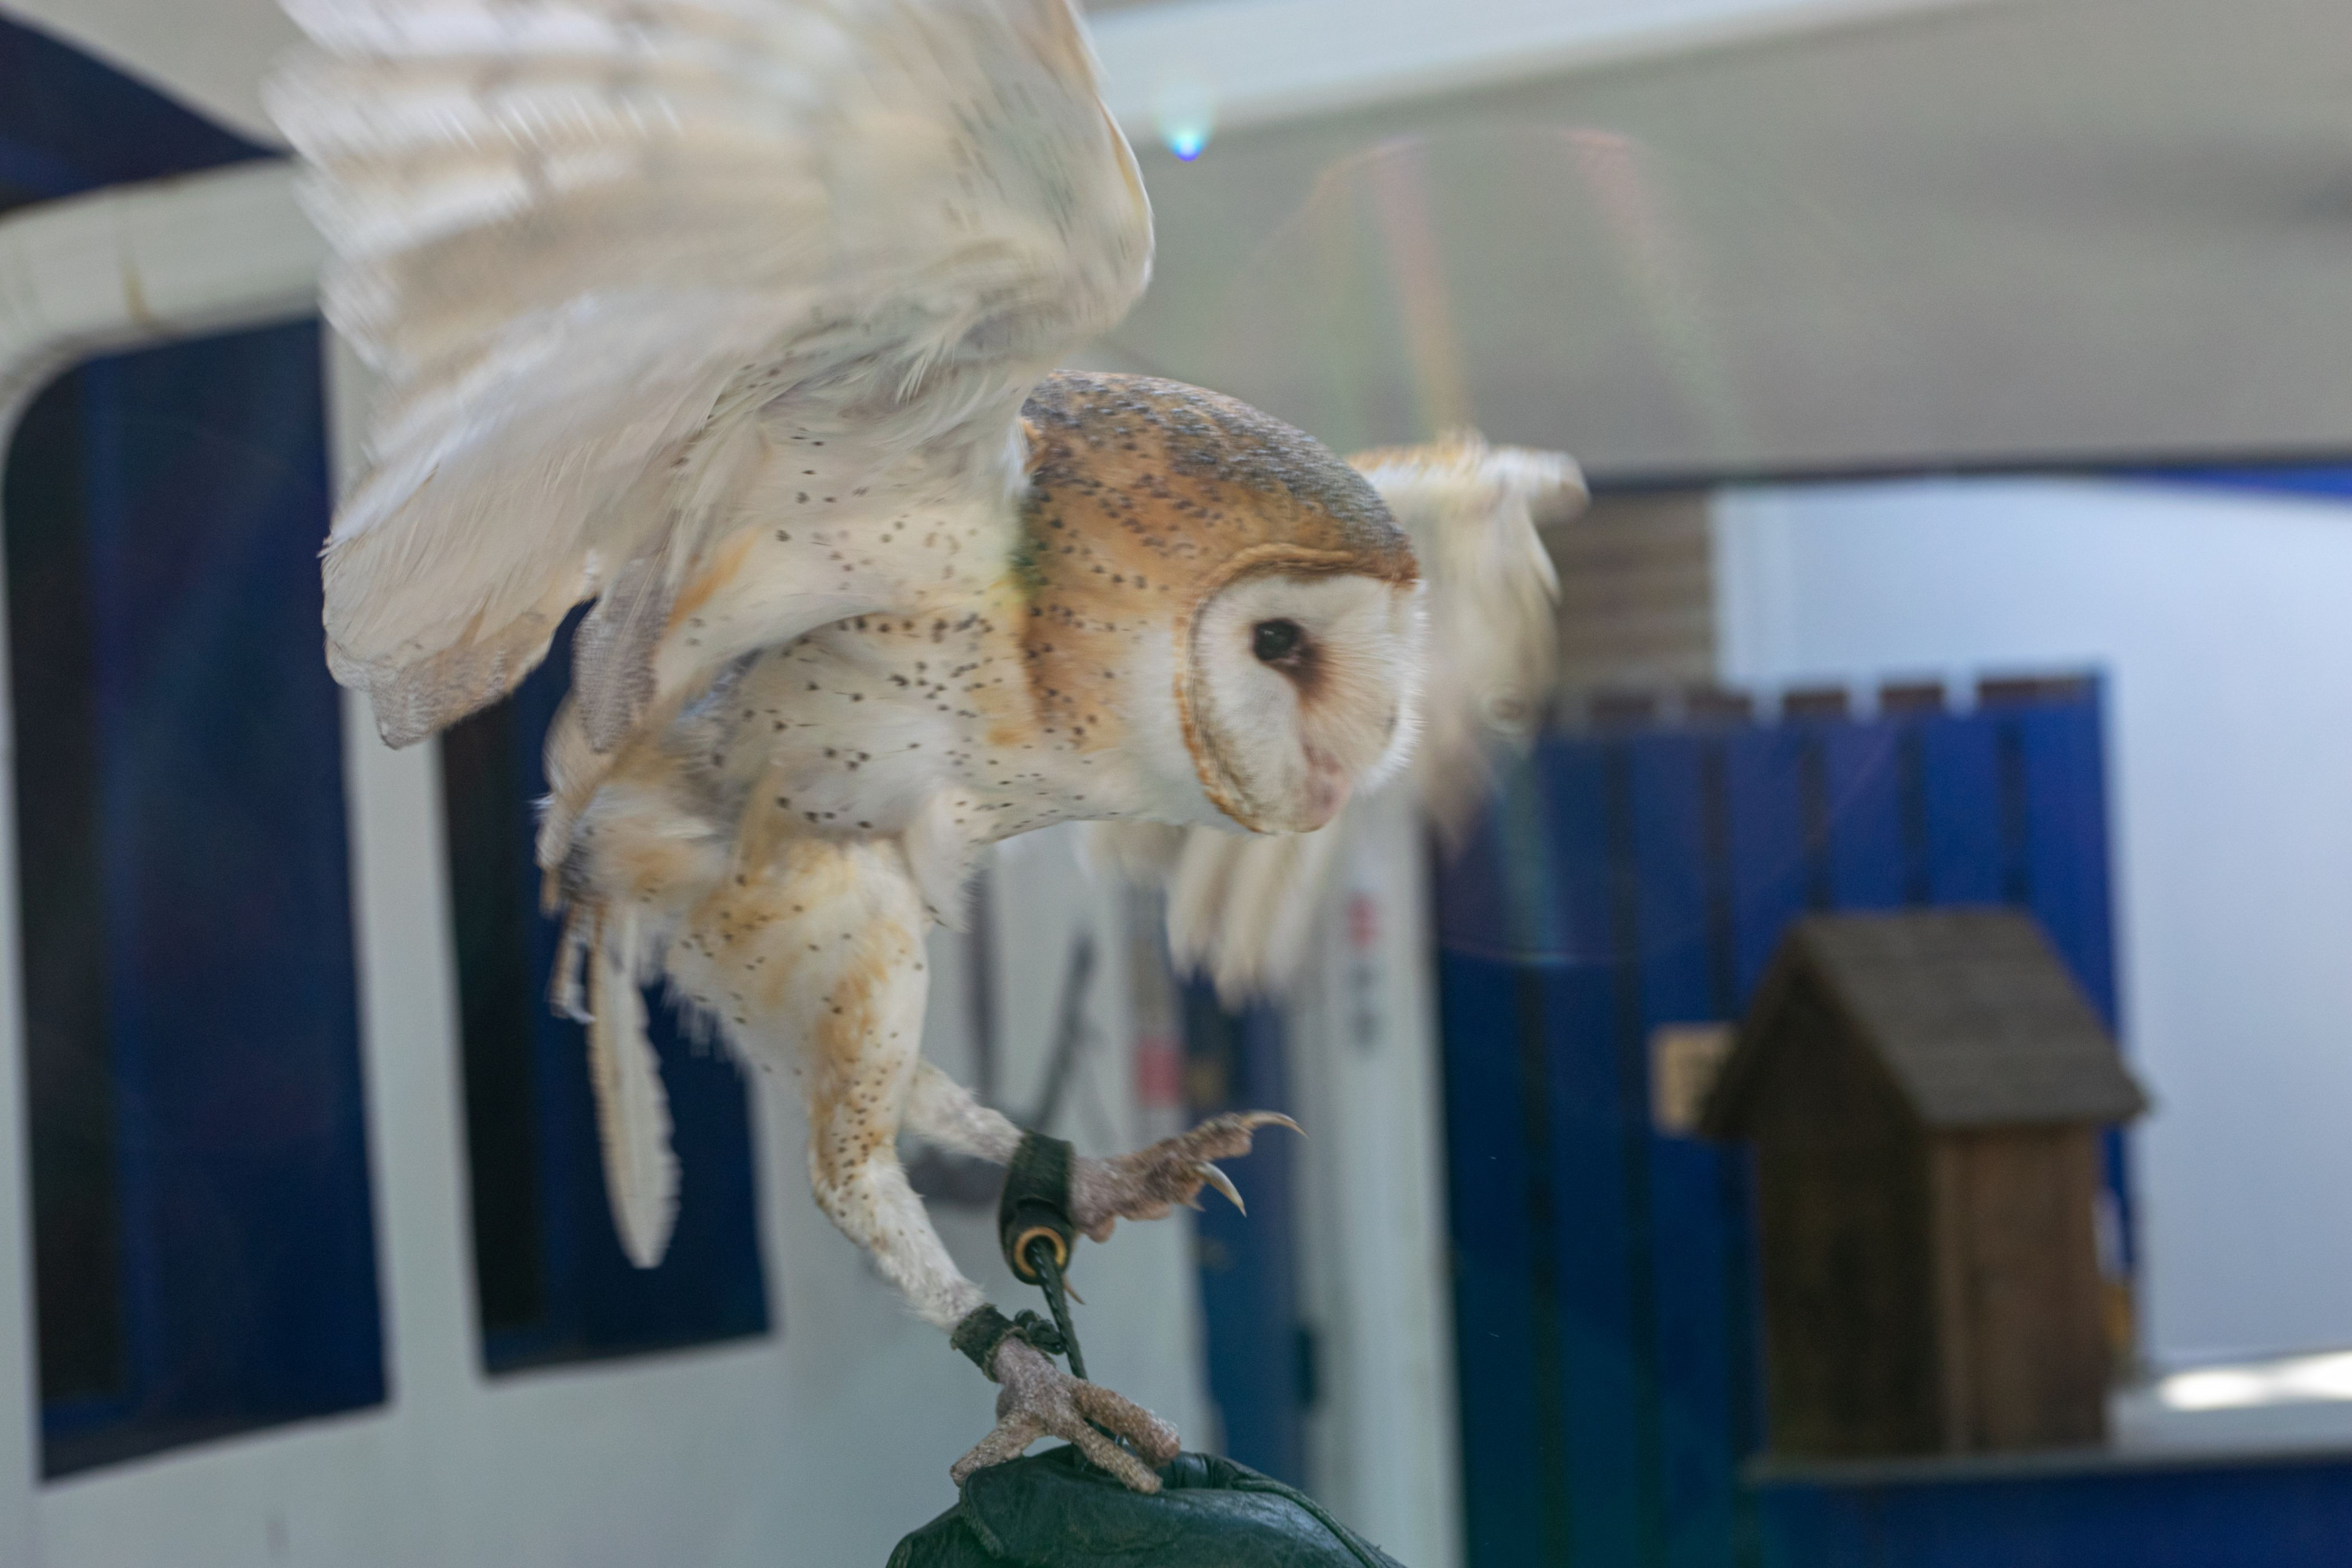 The owl flaps her wings. Sometimes owls become startled and instinctually try to fly away from their handlers.